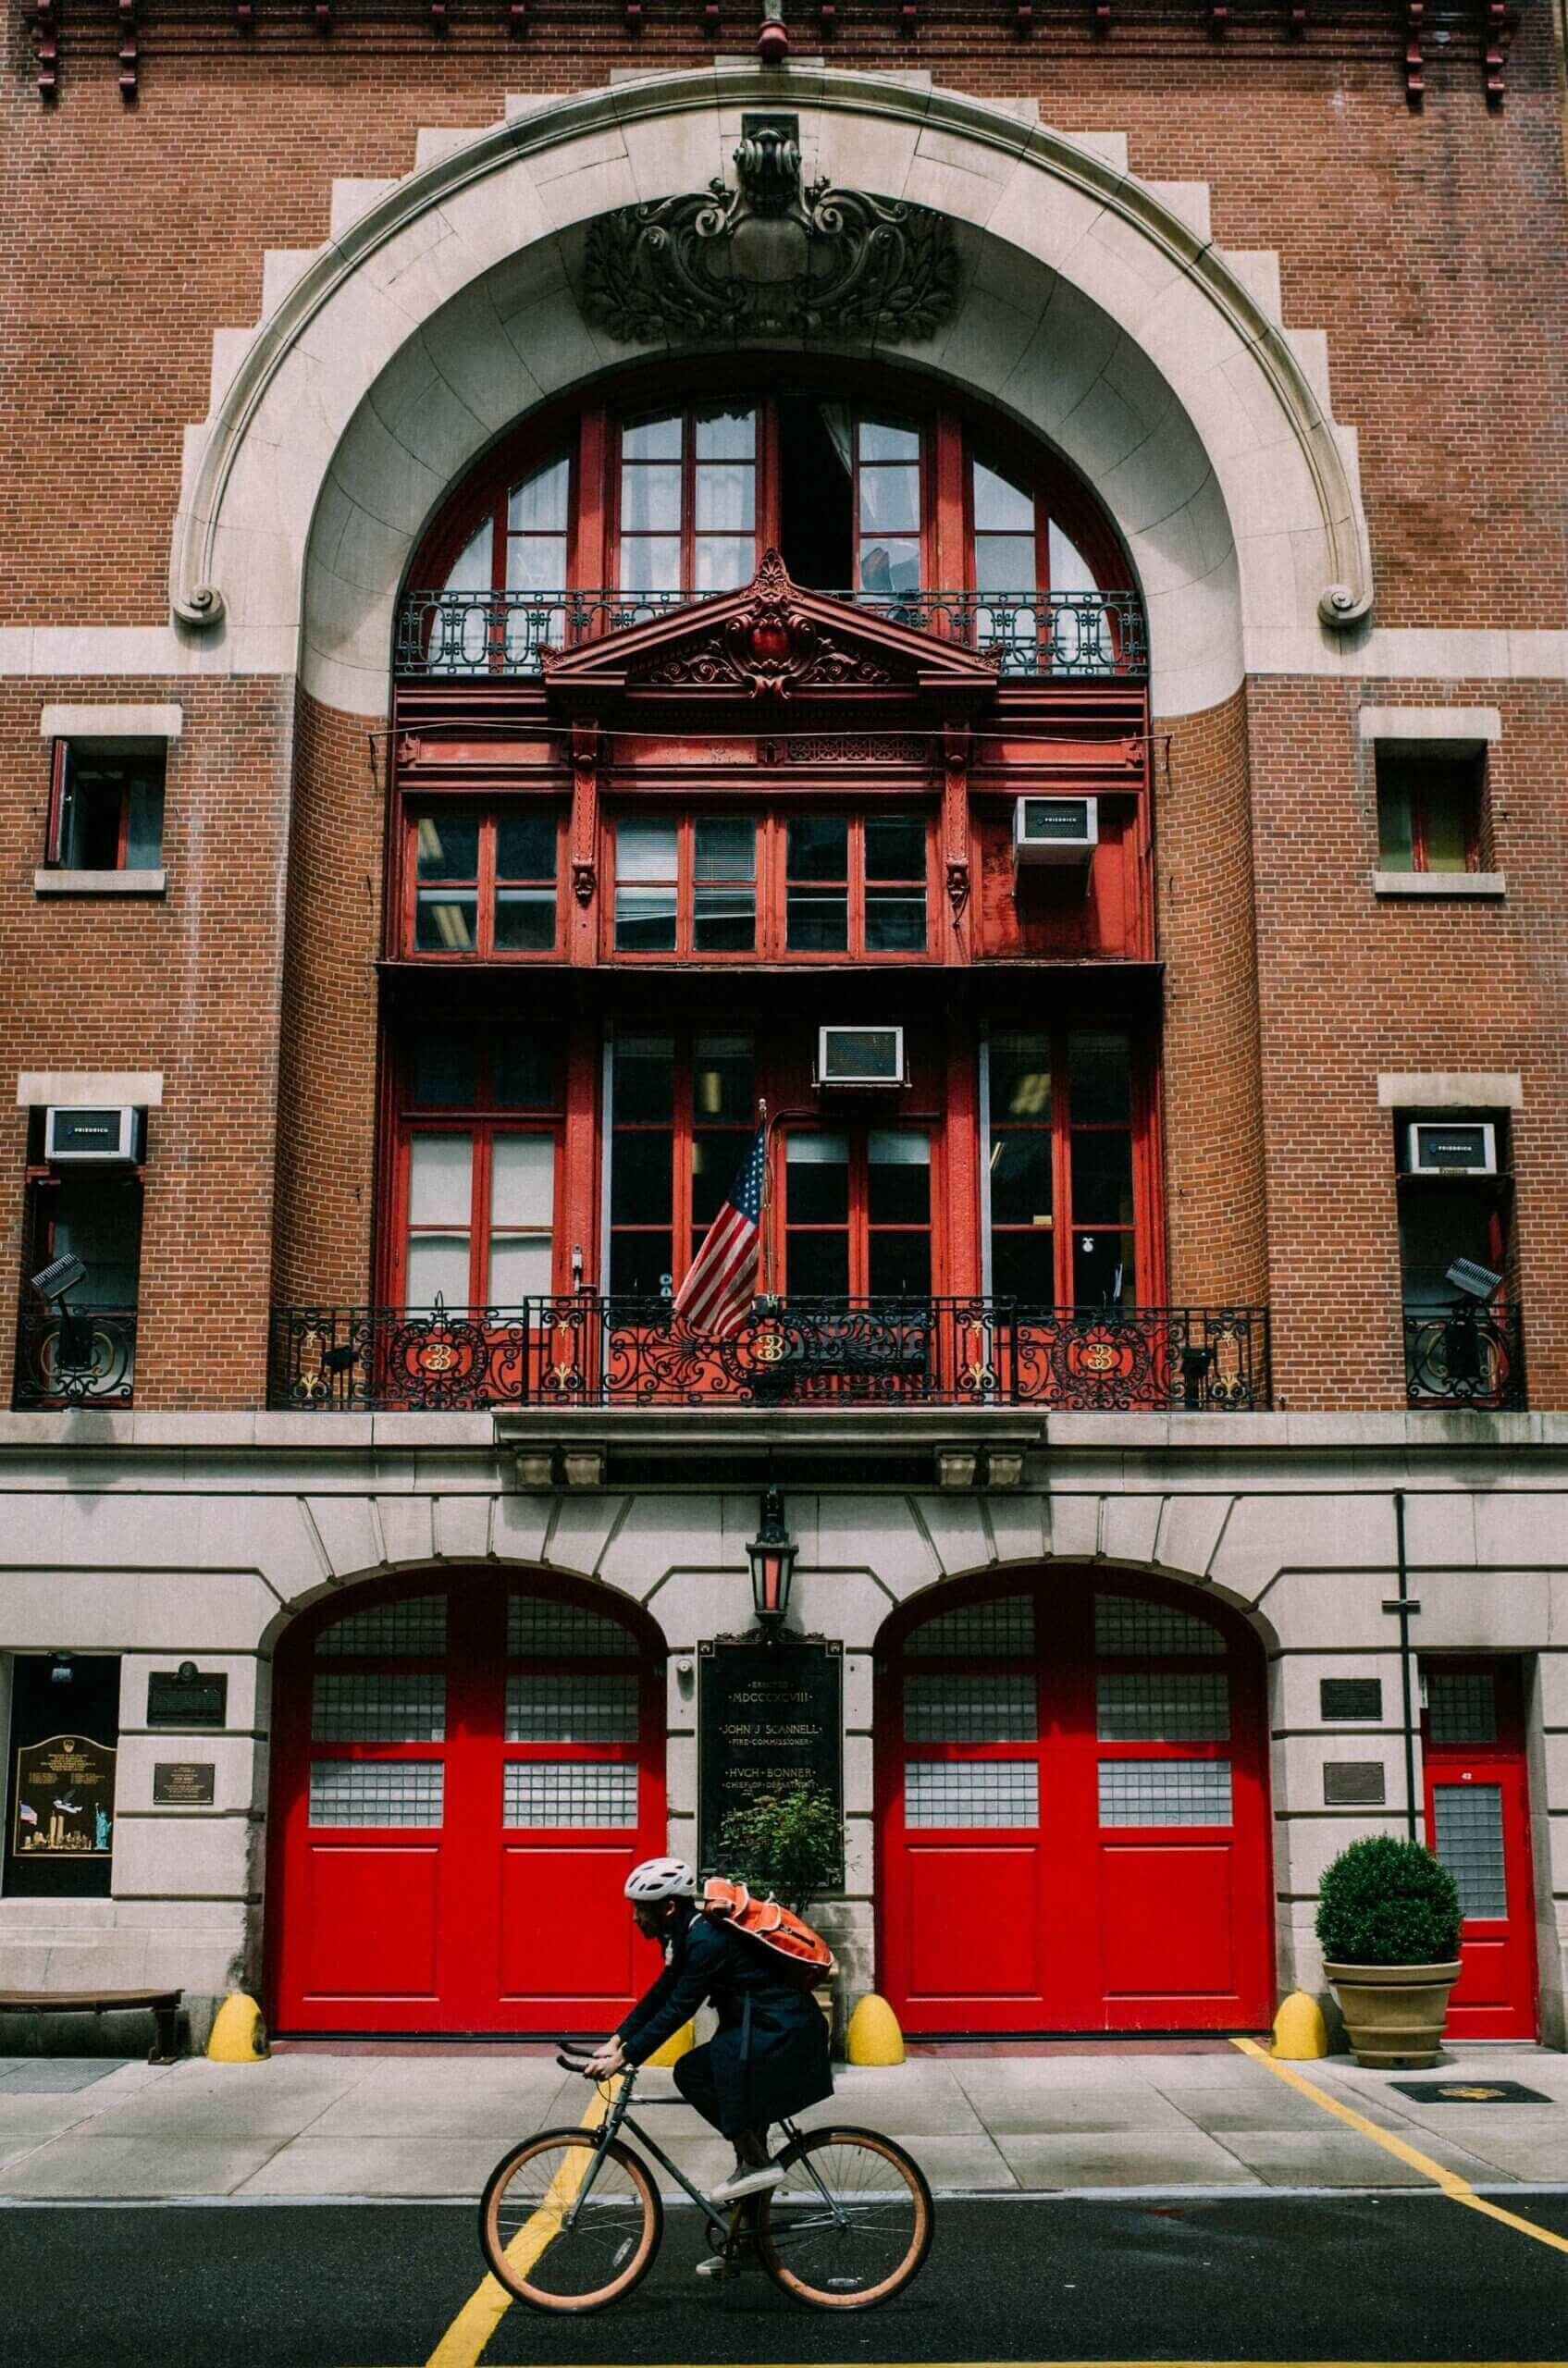 A frontal view of a fire station in the East Village